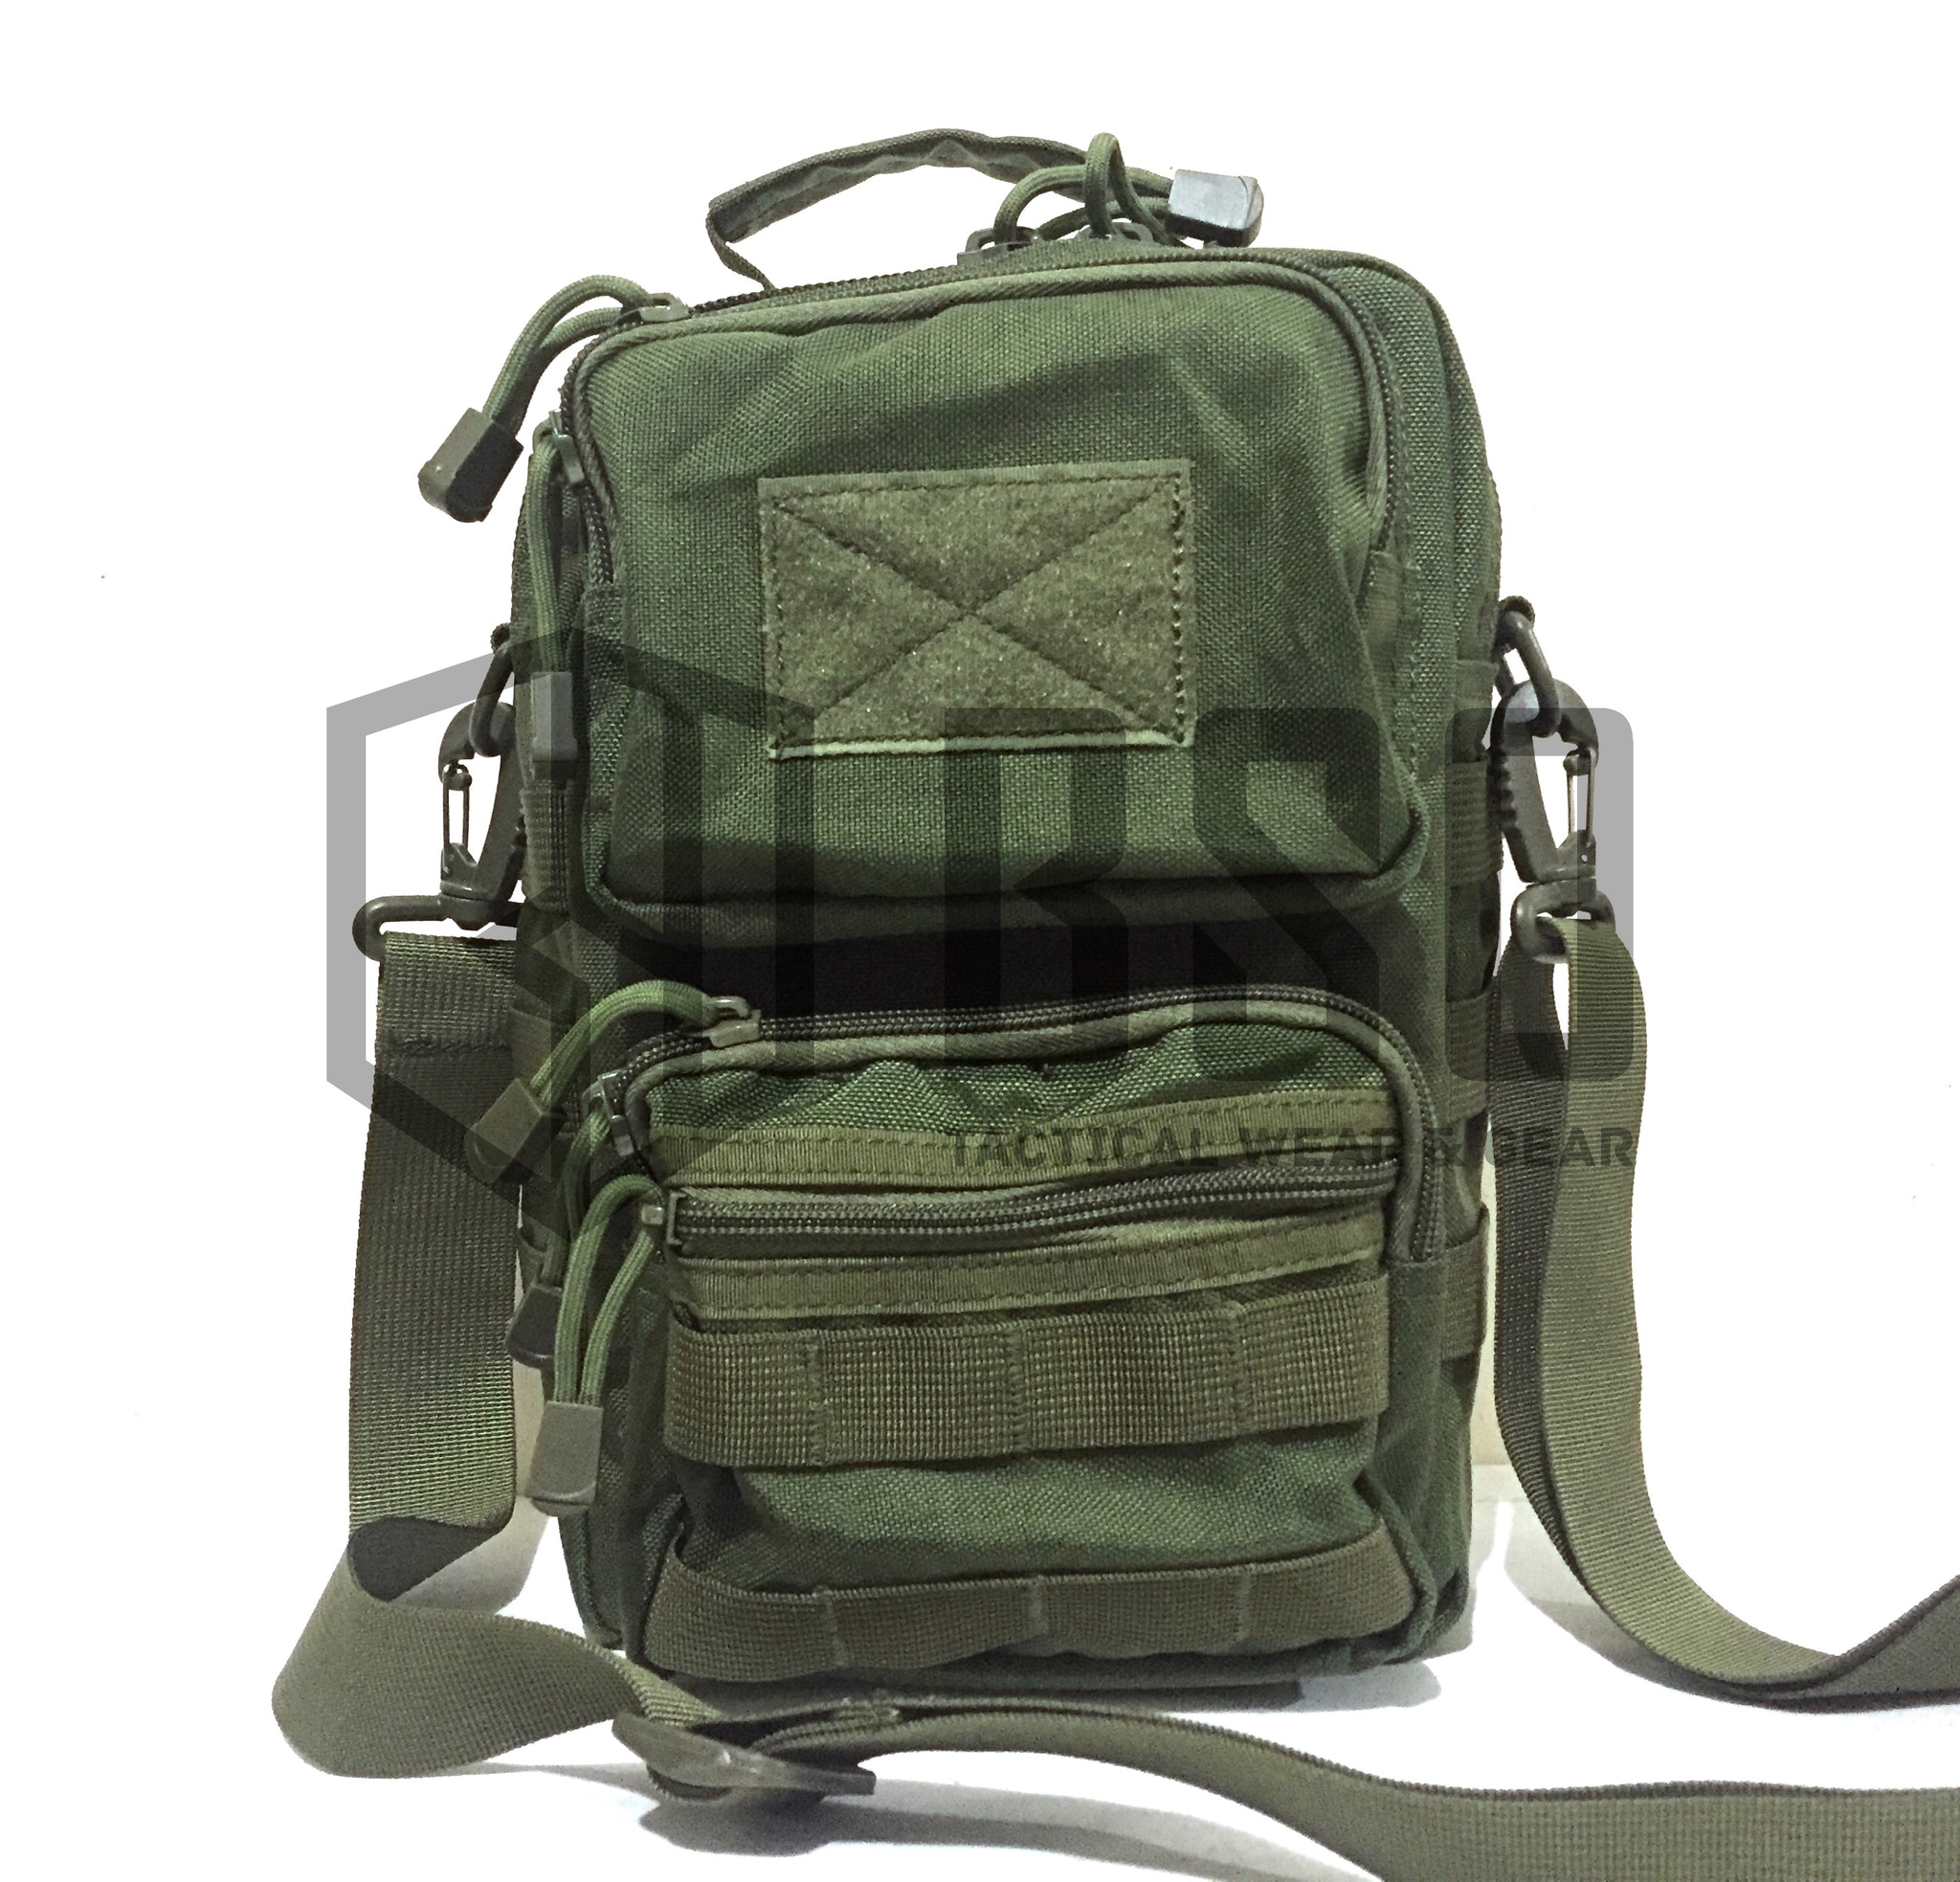 Tas selempang tactical molle bag travelling outdoor bag 9060 cordura